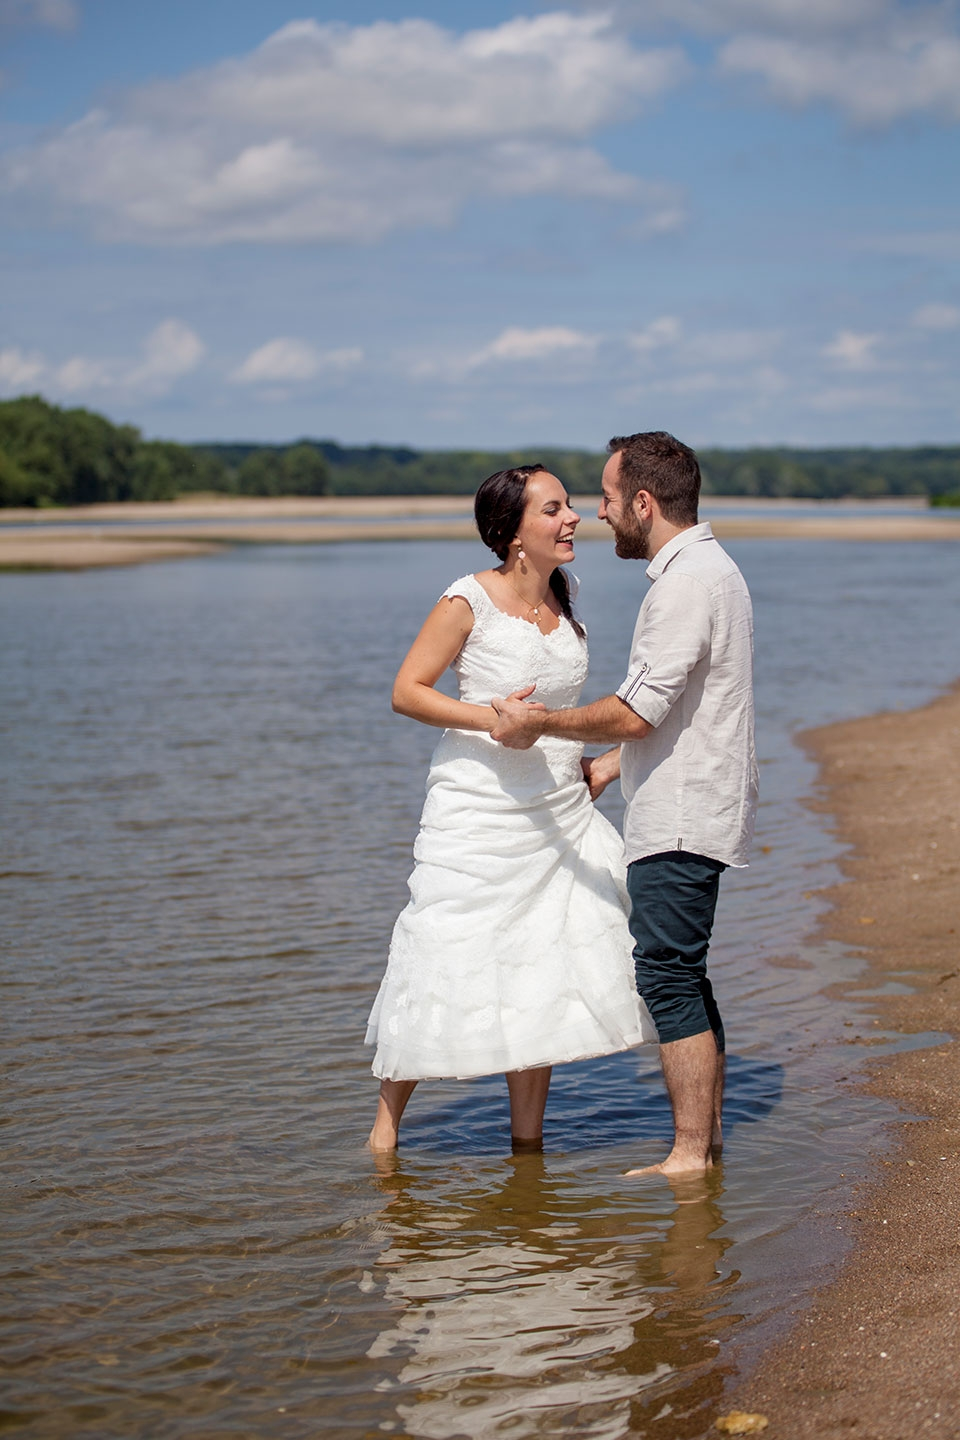 particuliers-evenements-mariage-oui-carla&jeremy-35